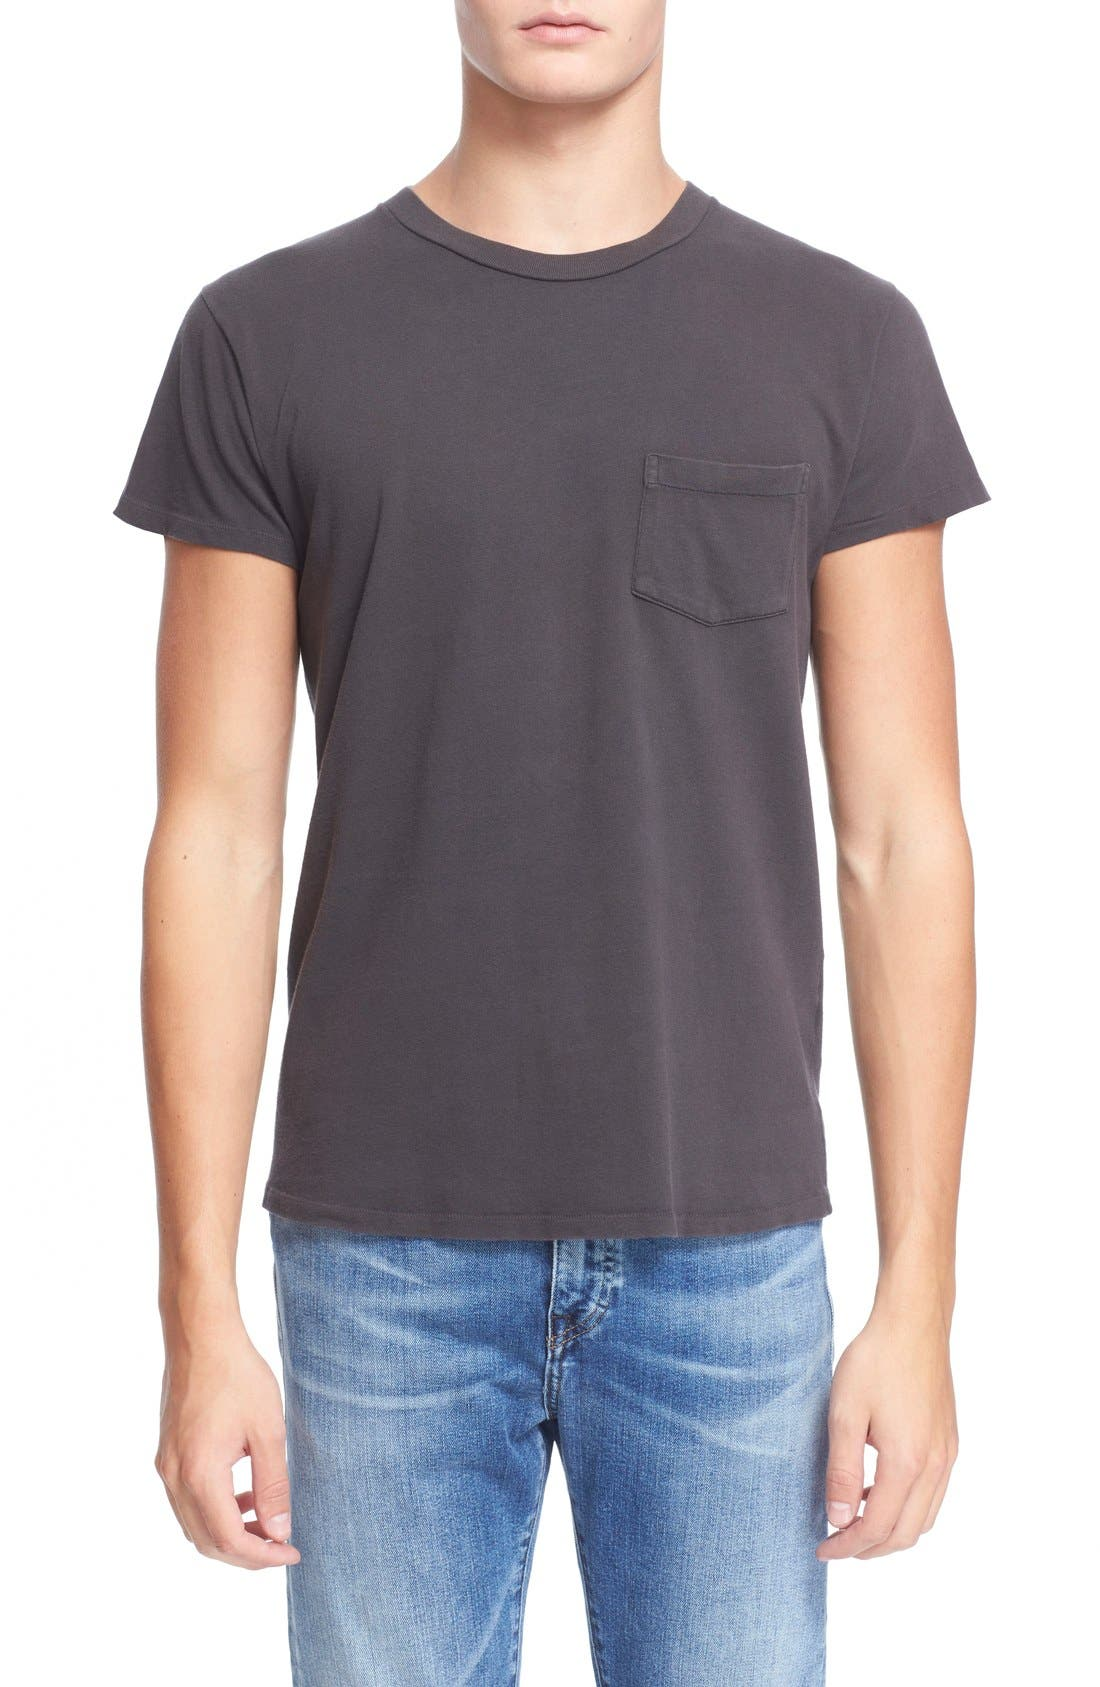 Levi's Vintage Clothing '1950s' Pocket T-Shirt